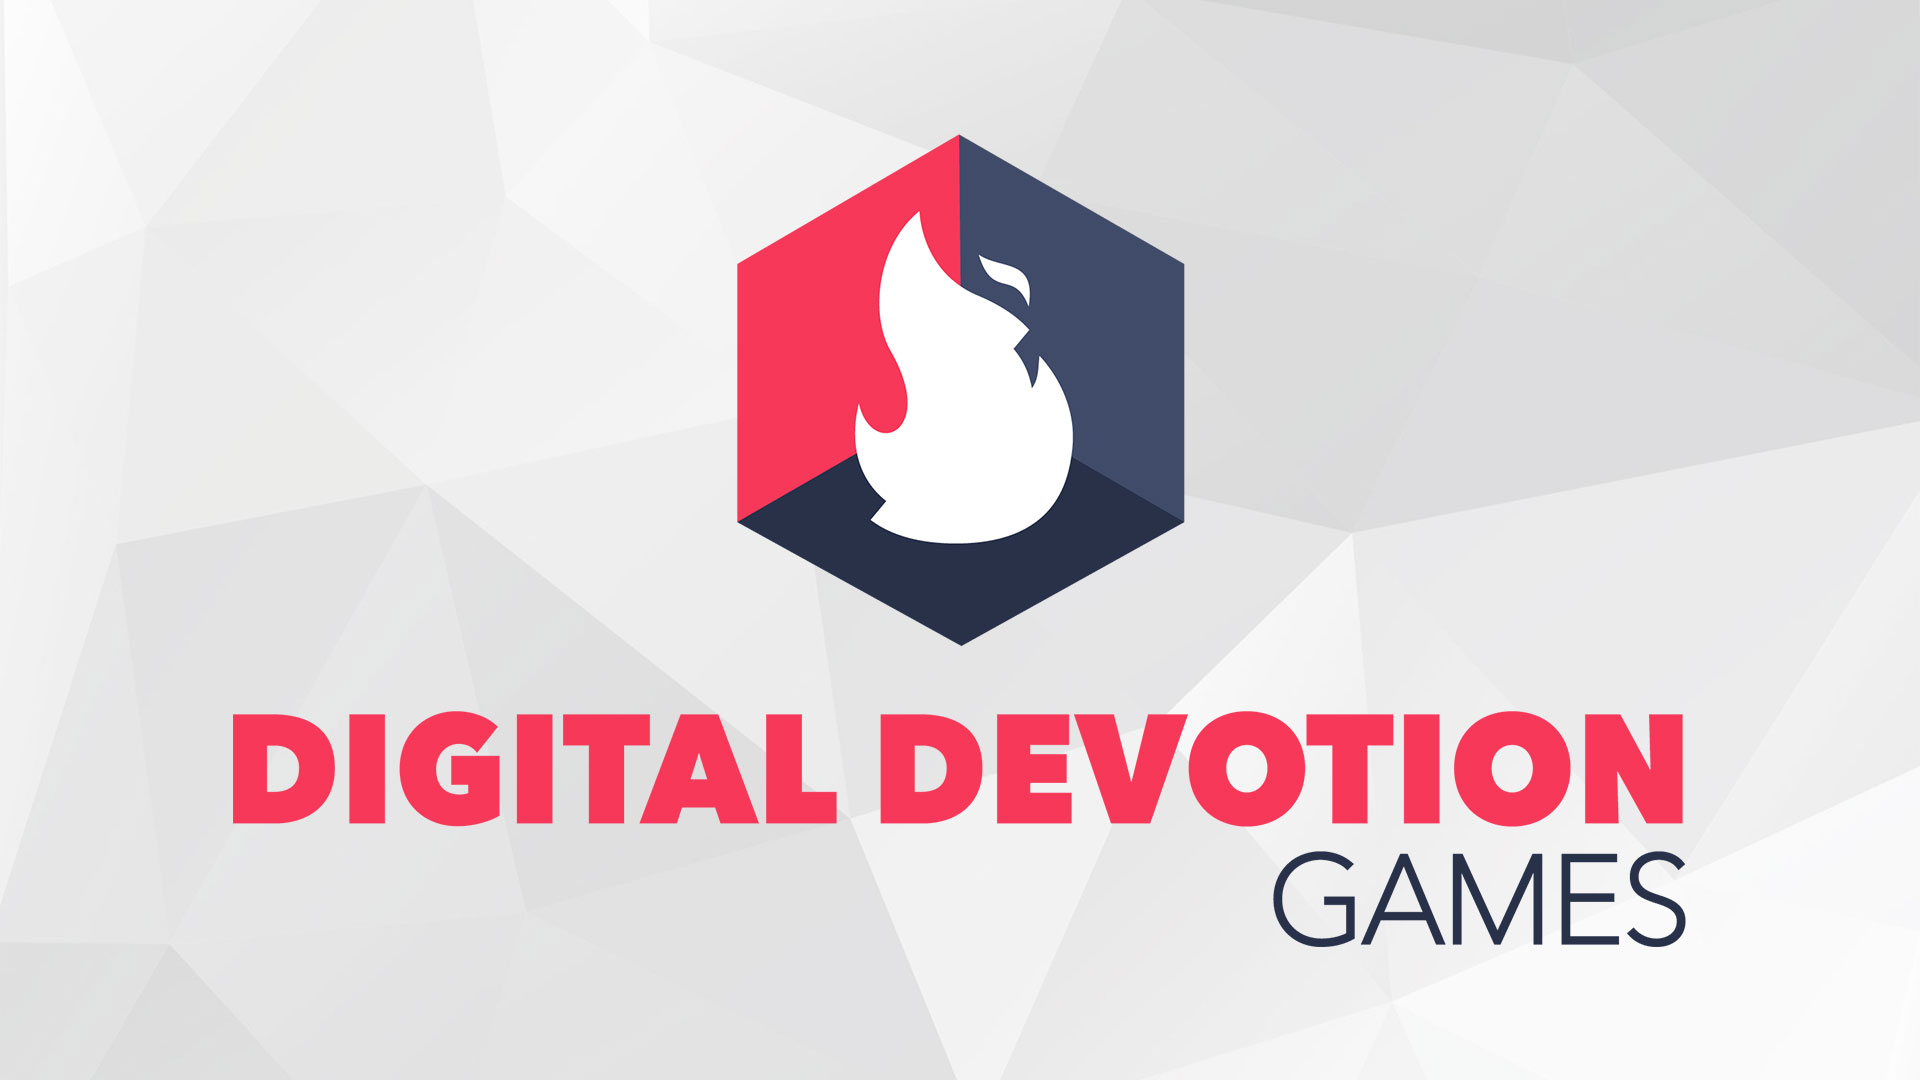 Digital Devotion Games, Home, Digital Devotion Games